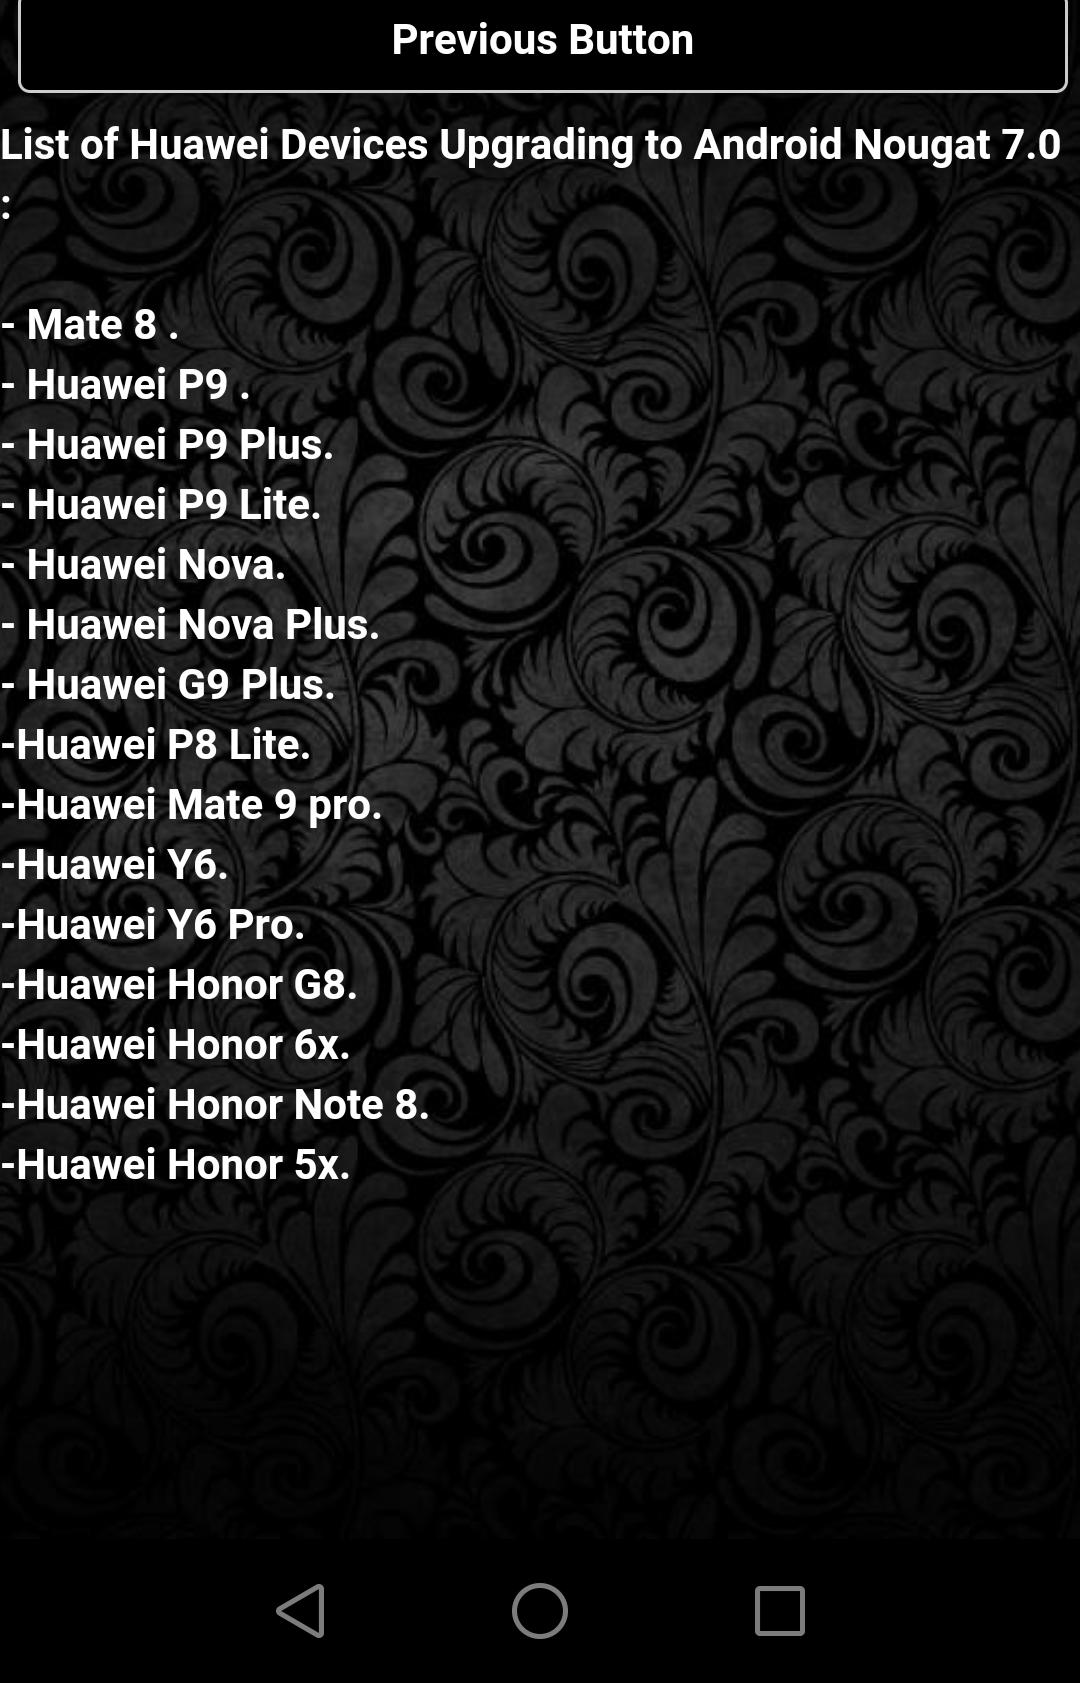 Nougat Update Huawei Guide for Android - APK Download